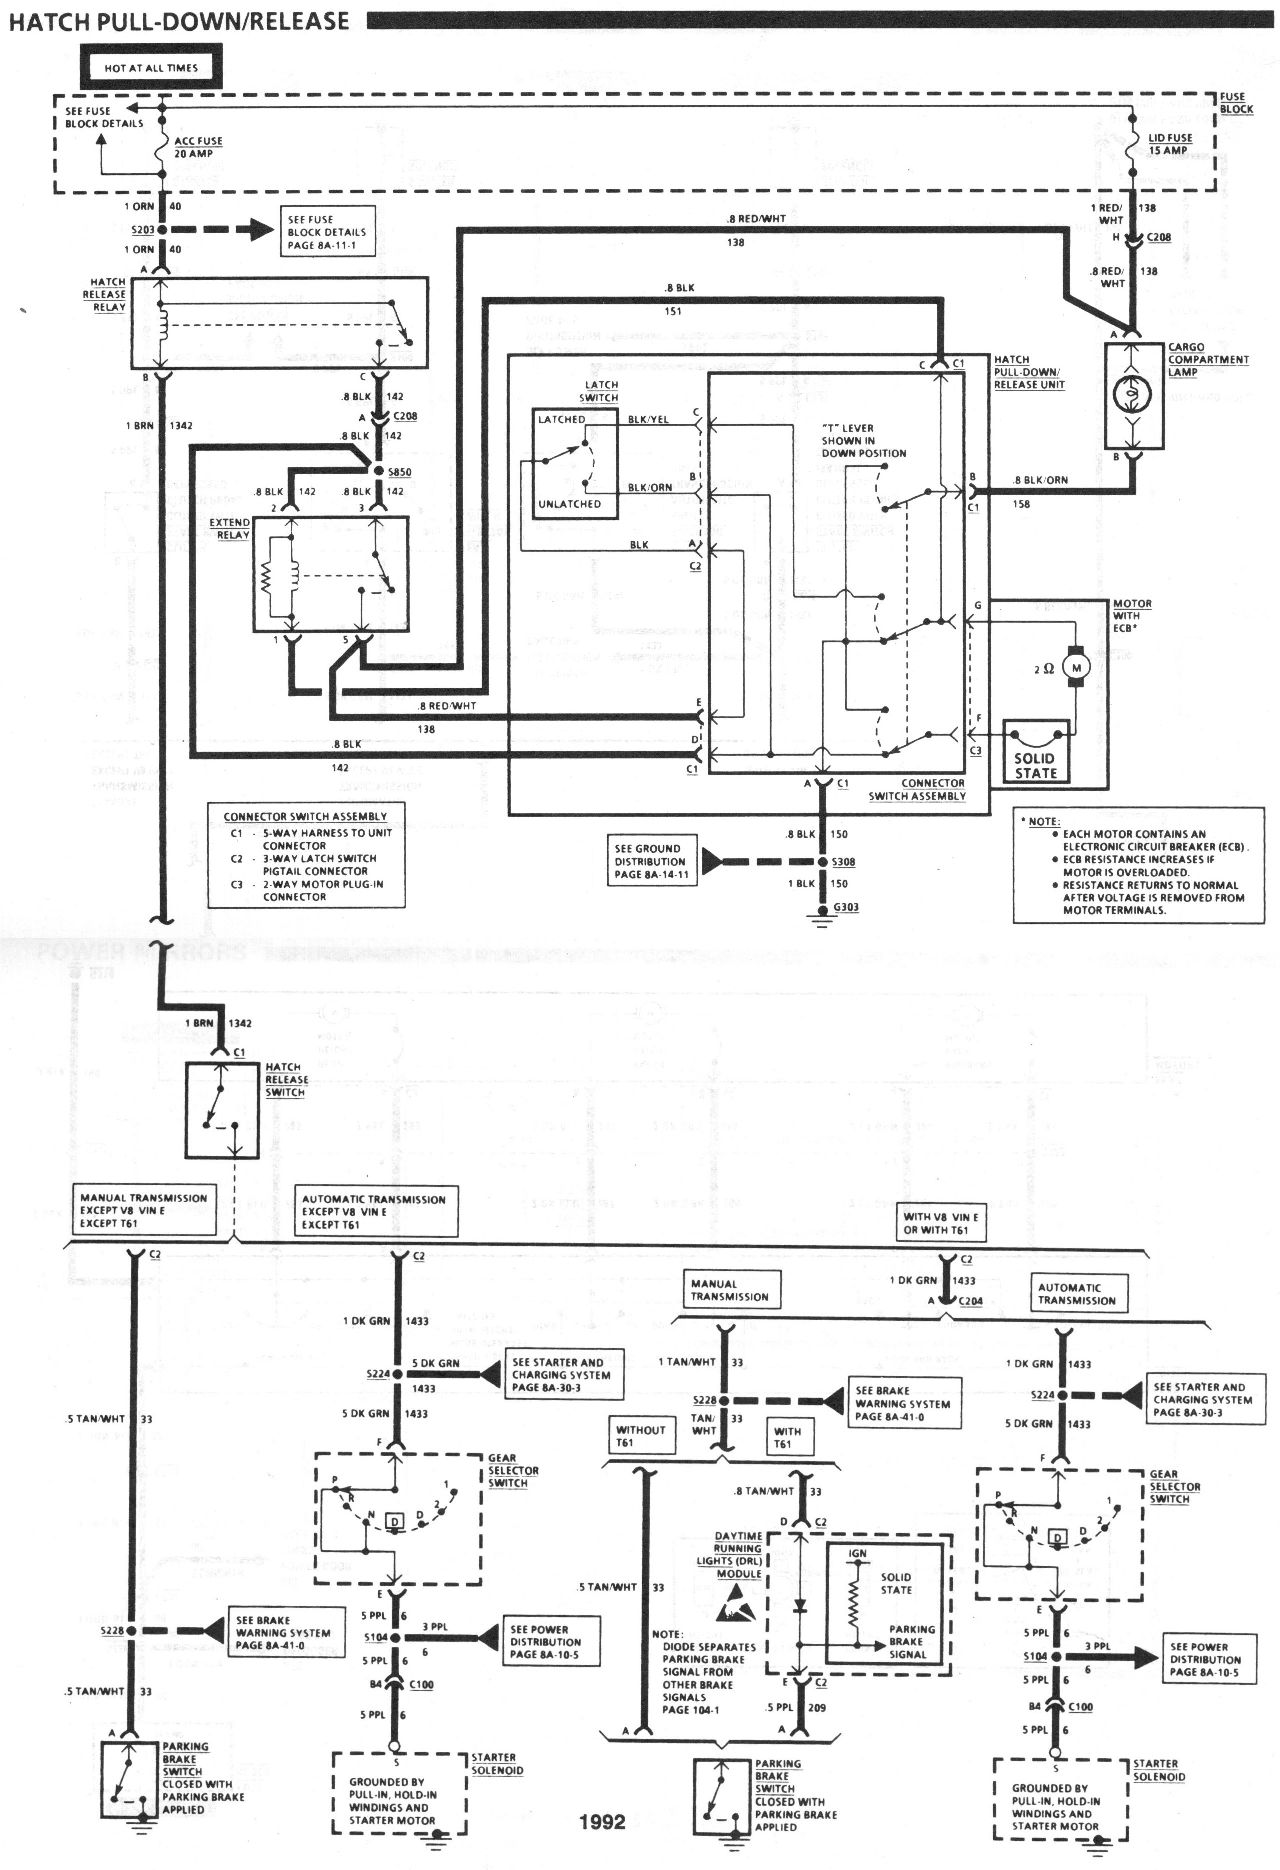 1991 chevy camaro fuse diagram 2 way switch light wiring diagrams for a rs k1500